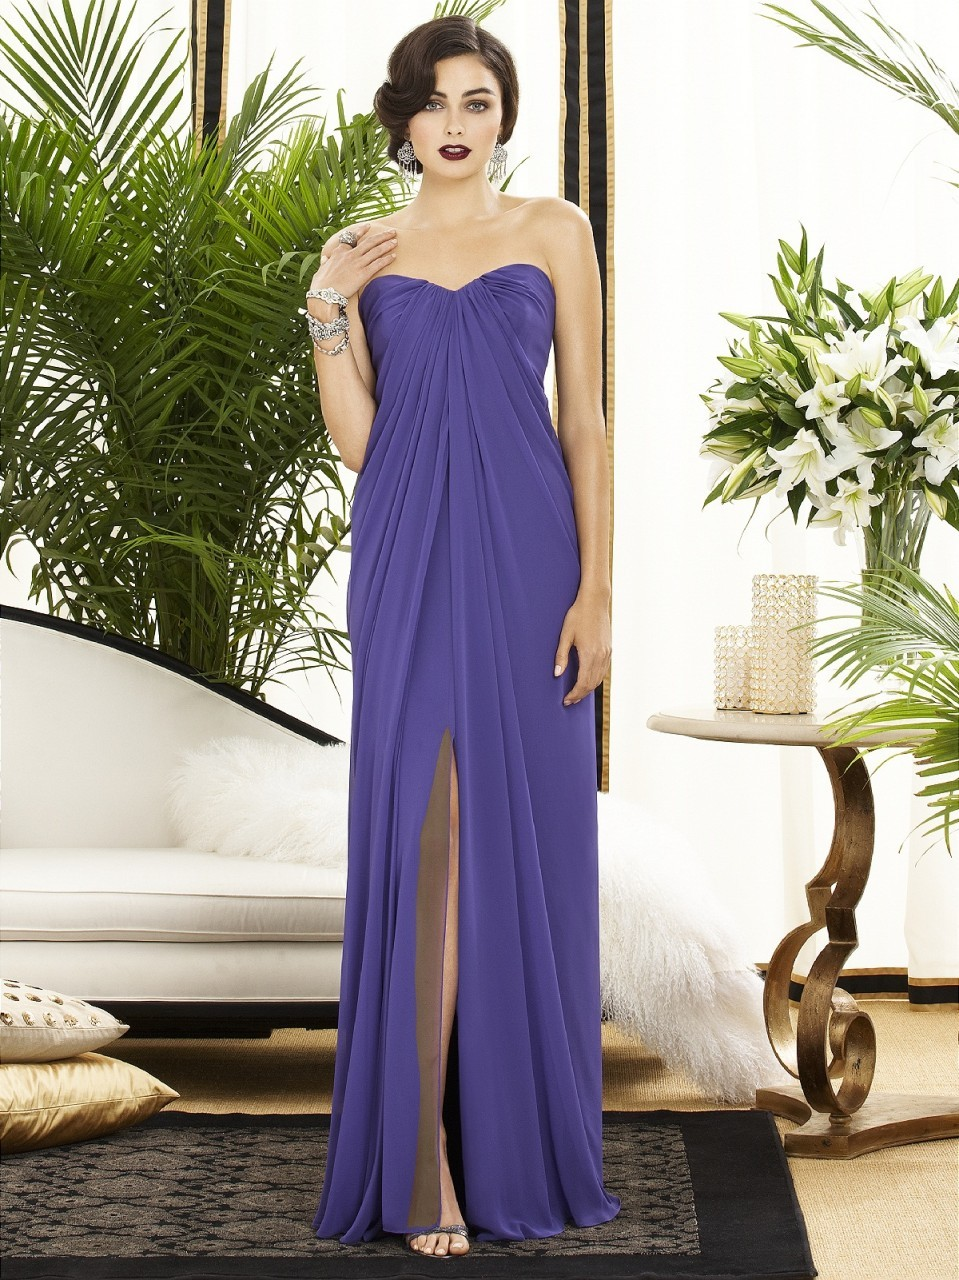 DESSY BRIDESMAID DRESSES|DESSY DRESSES 2879|D2879|THE DESSY GROUP ...